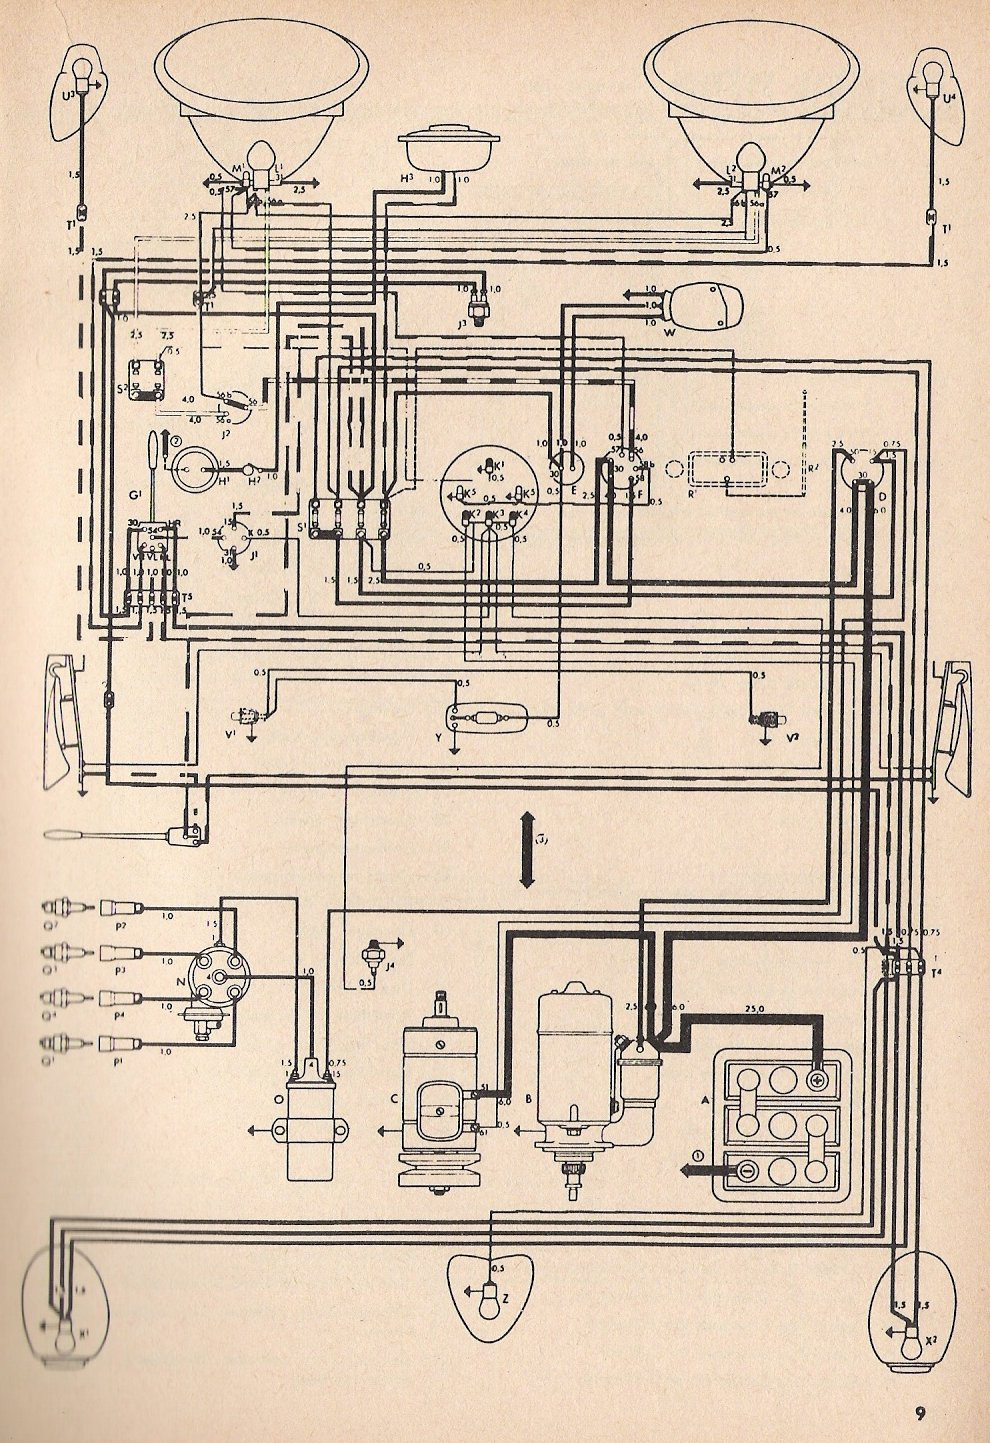 1962 vw beetle wiring diagram 7 1 spikeballclubkoeln de \u2022thesamba com type 1 wiring diagrams rh thesamba com 1965 vw beetle wiring diagram 1965 vw beetle wiring diagram